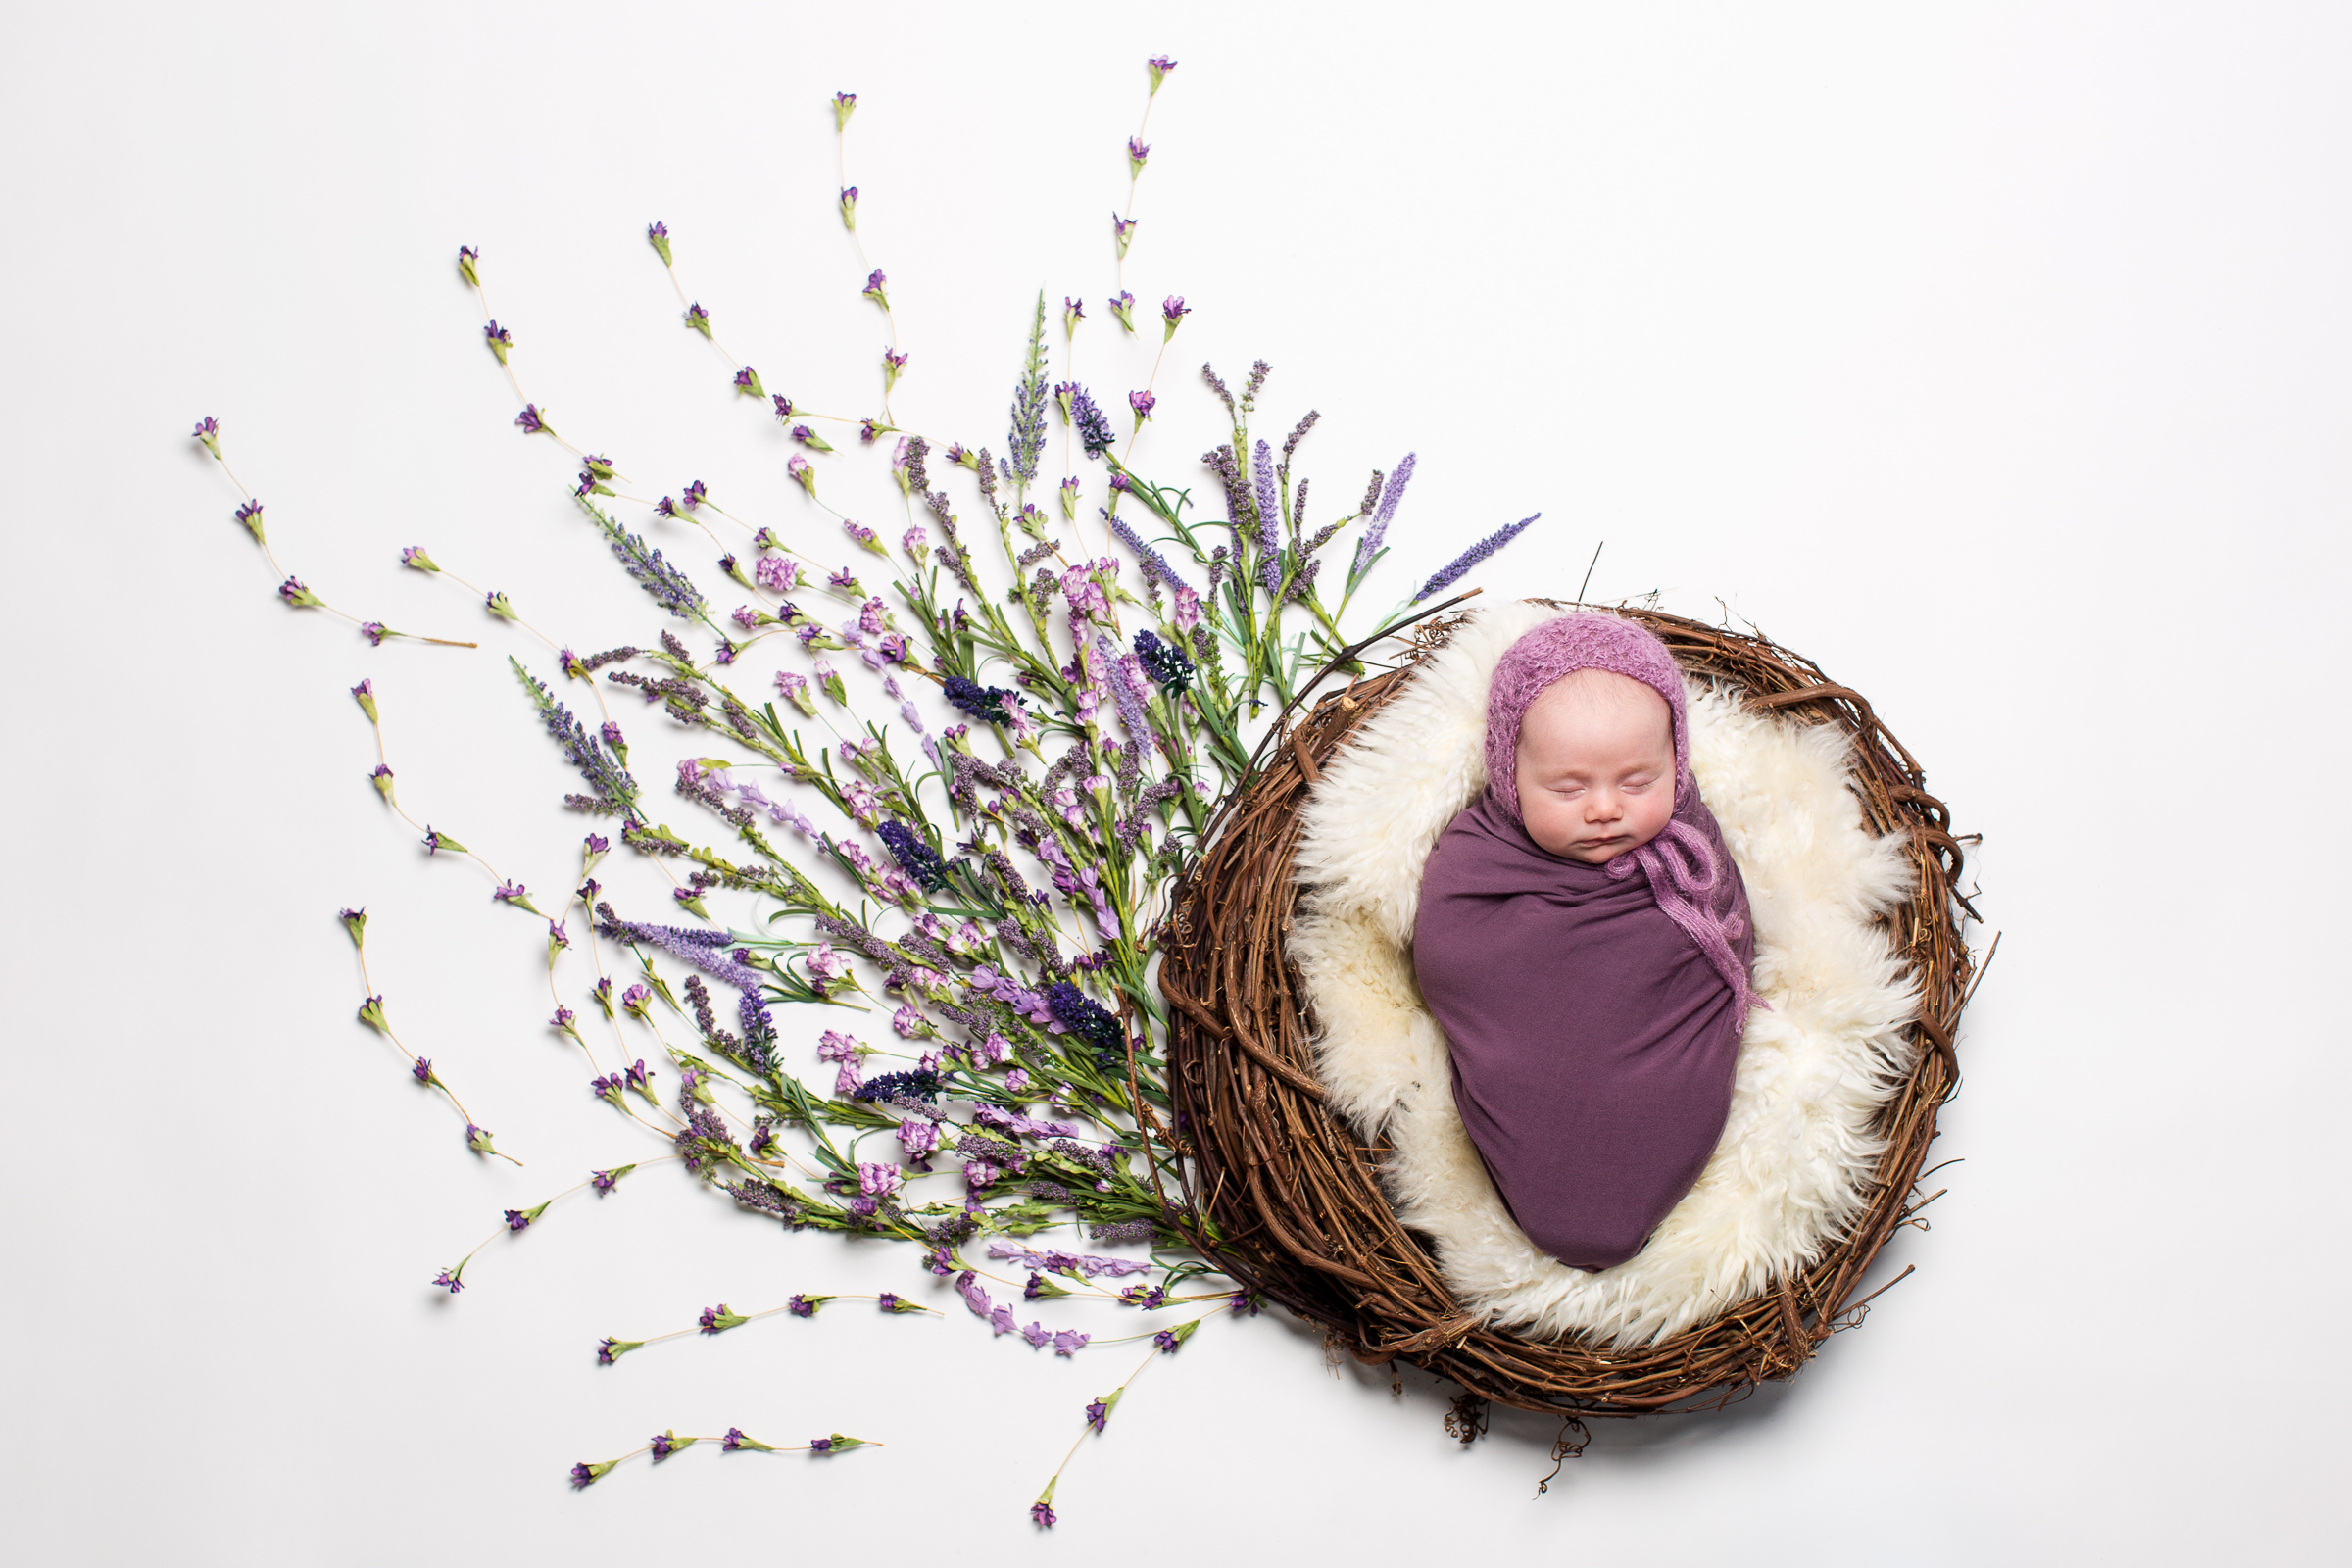 Newborn - Custom crafted newborn baby sessions freeze time during the first couple of weeks of your baby's journey.